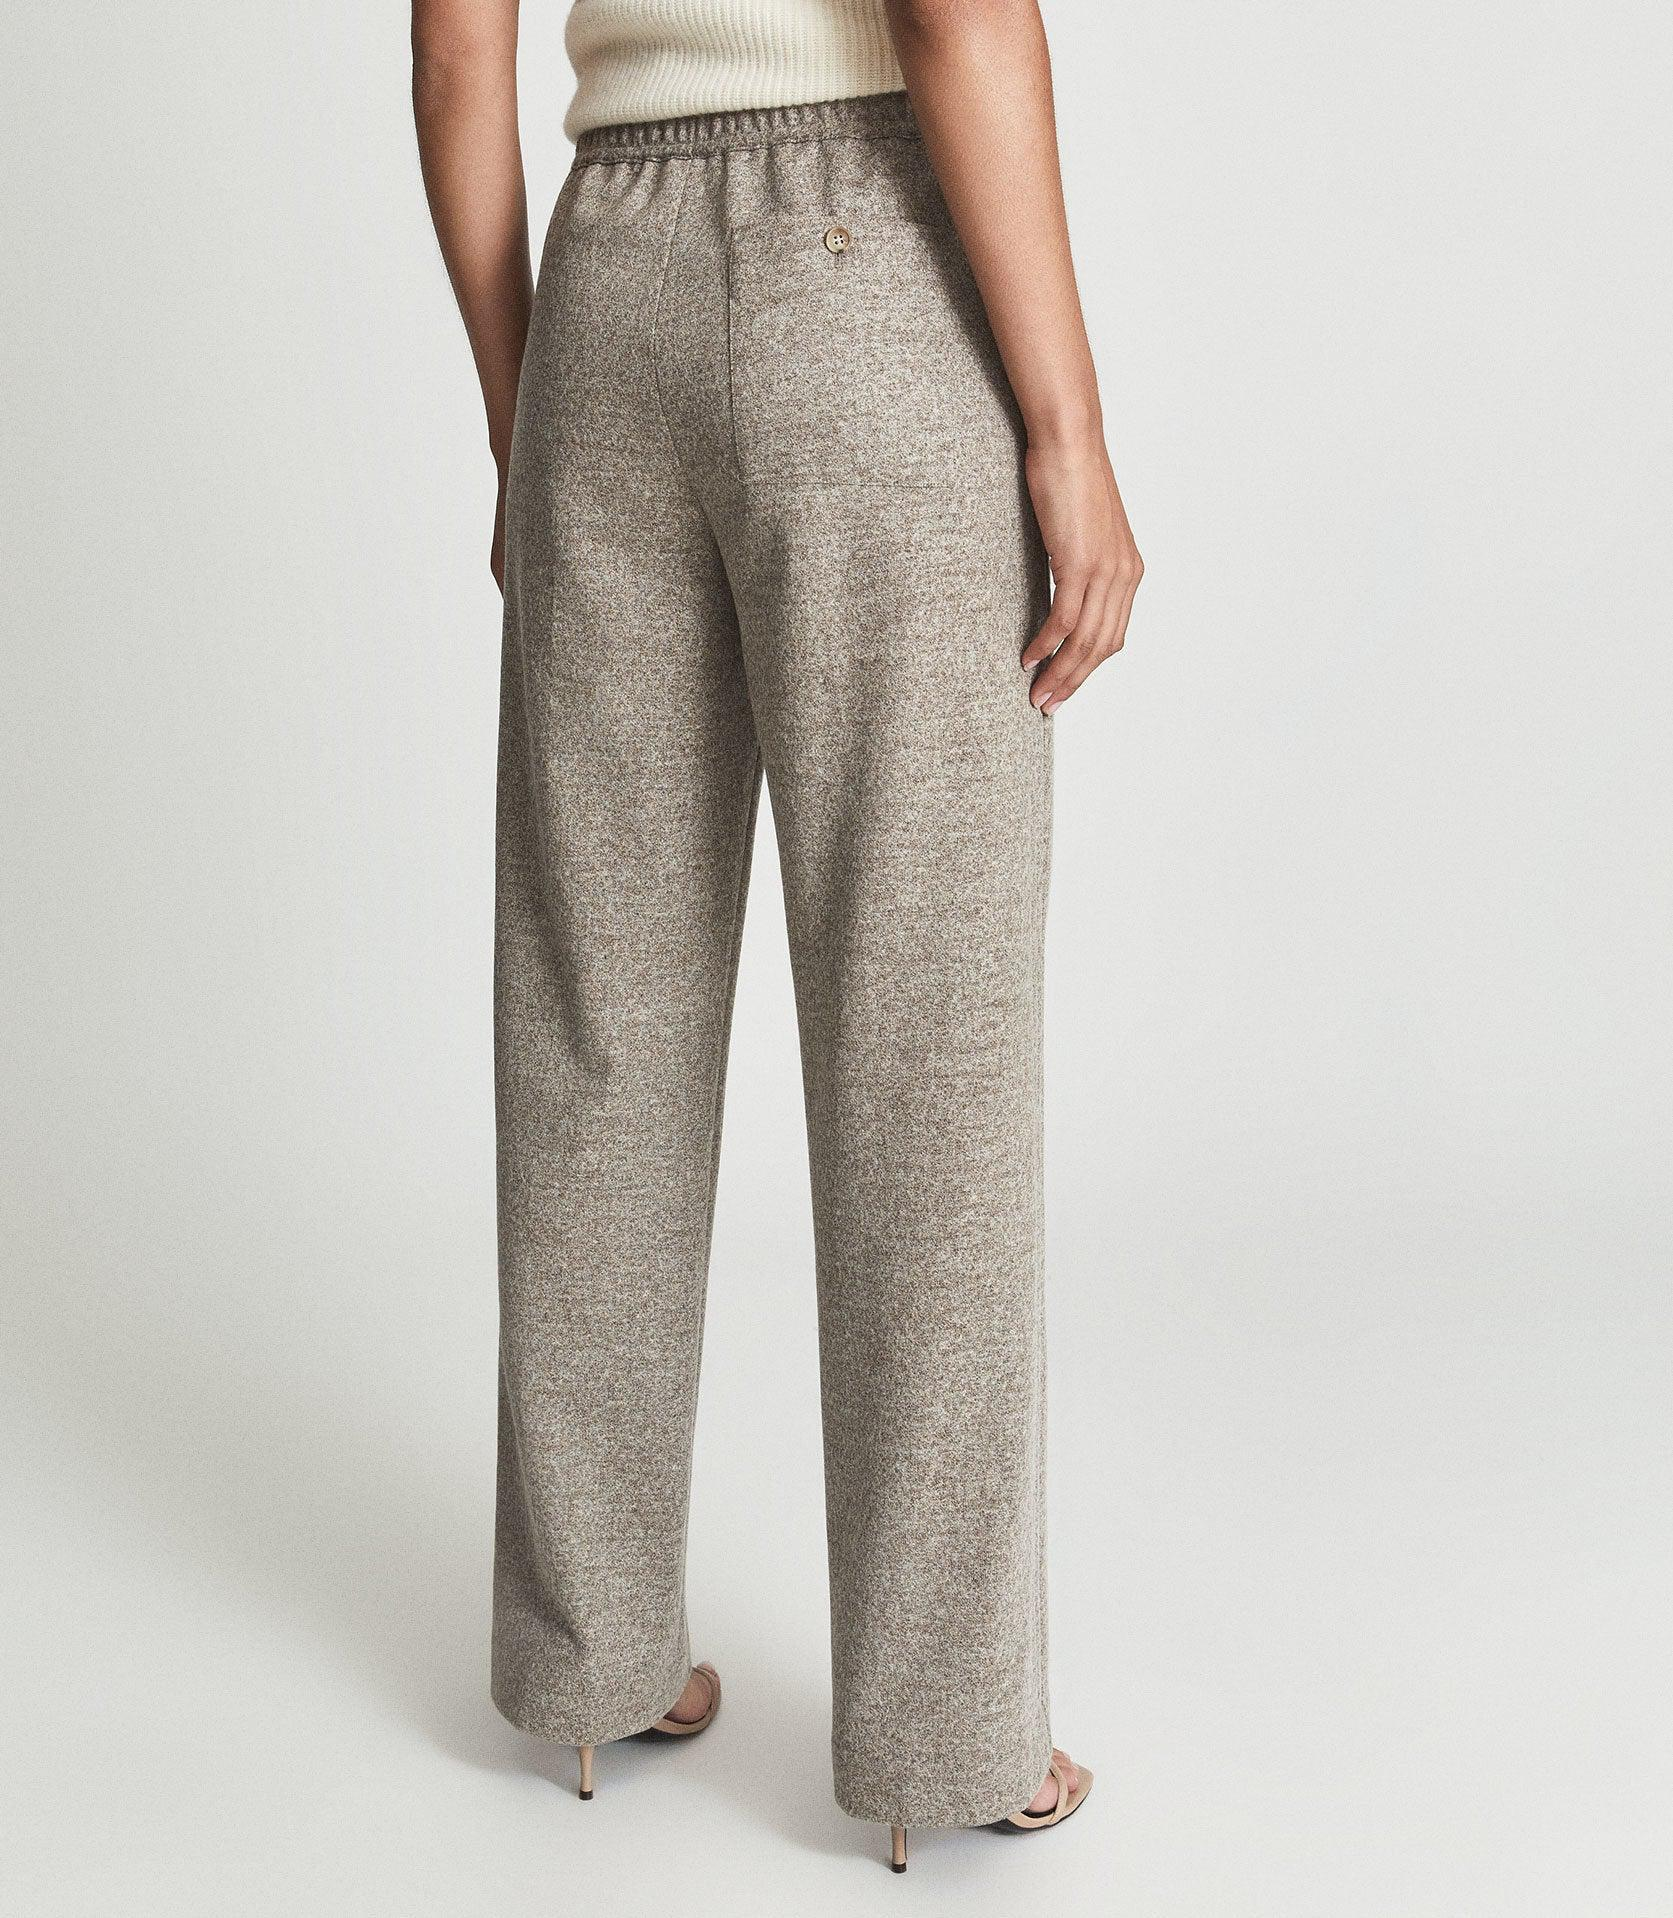 JOEY - TEXTURED WIDE LEG TROUSERS 3